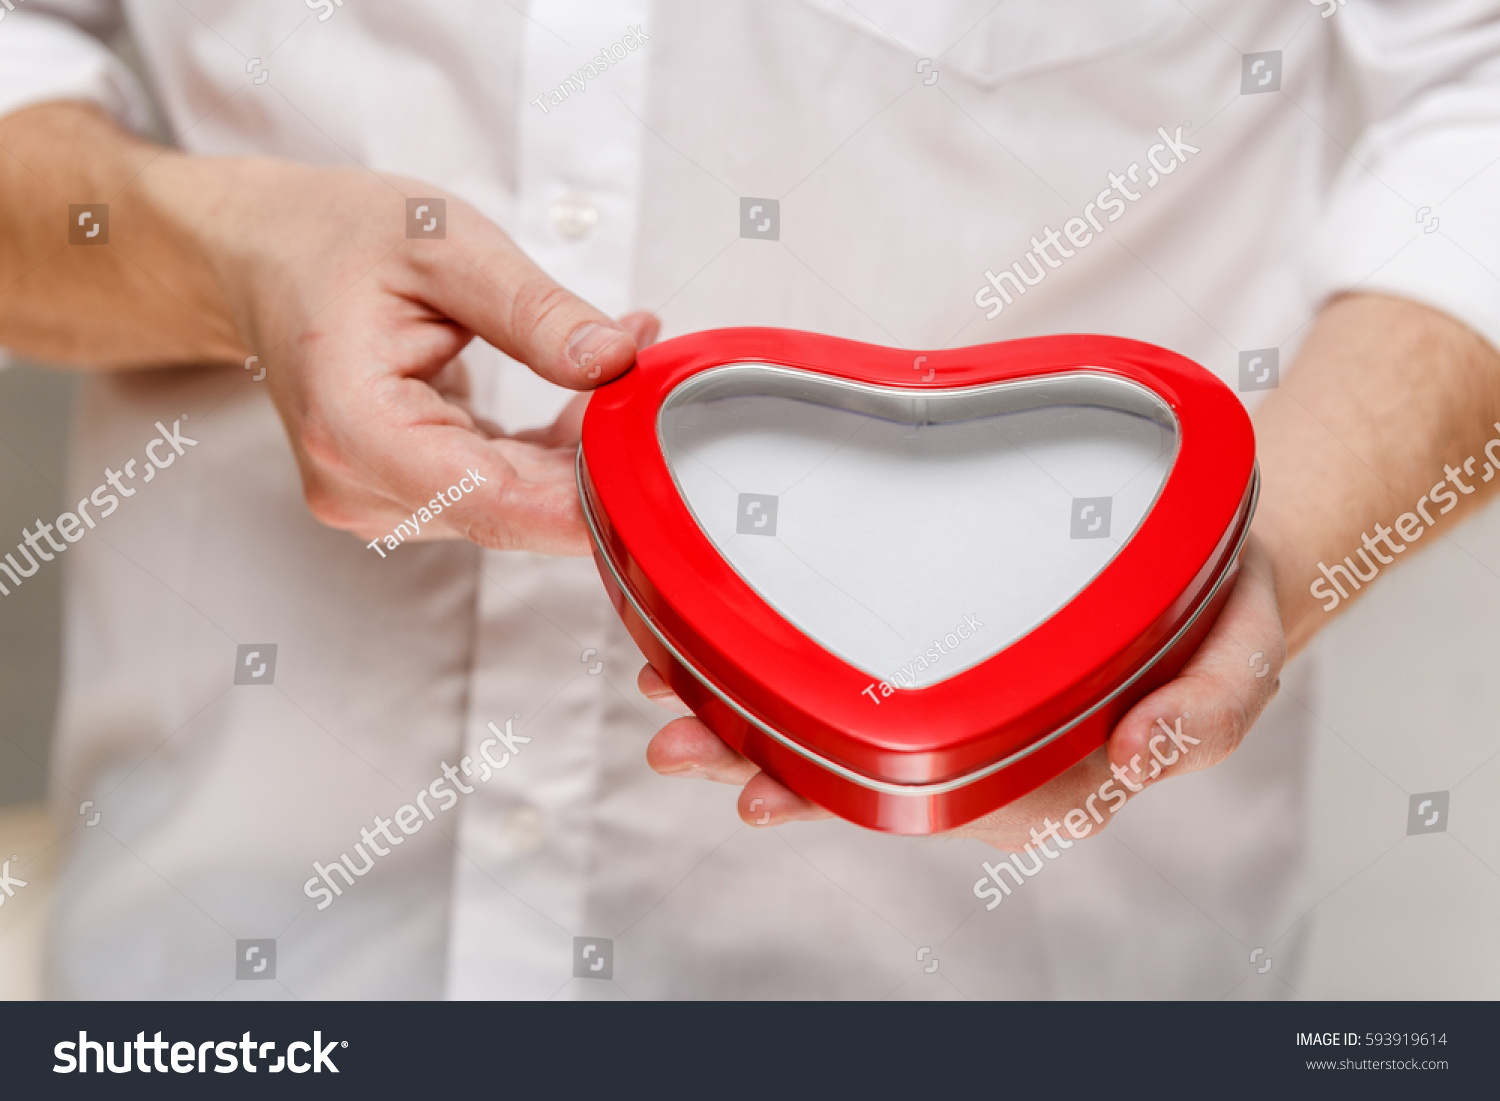 Male Hands Holding Heartshaped Gift Box Stock Photo ...